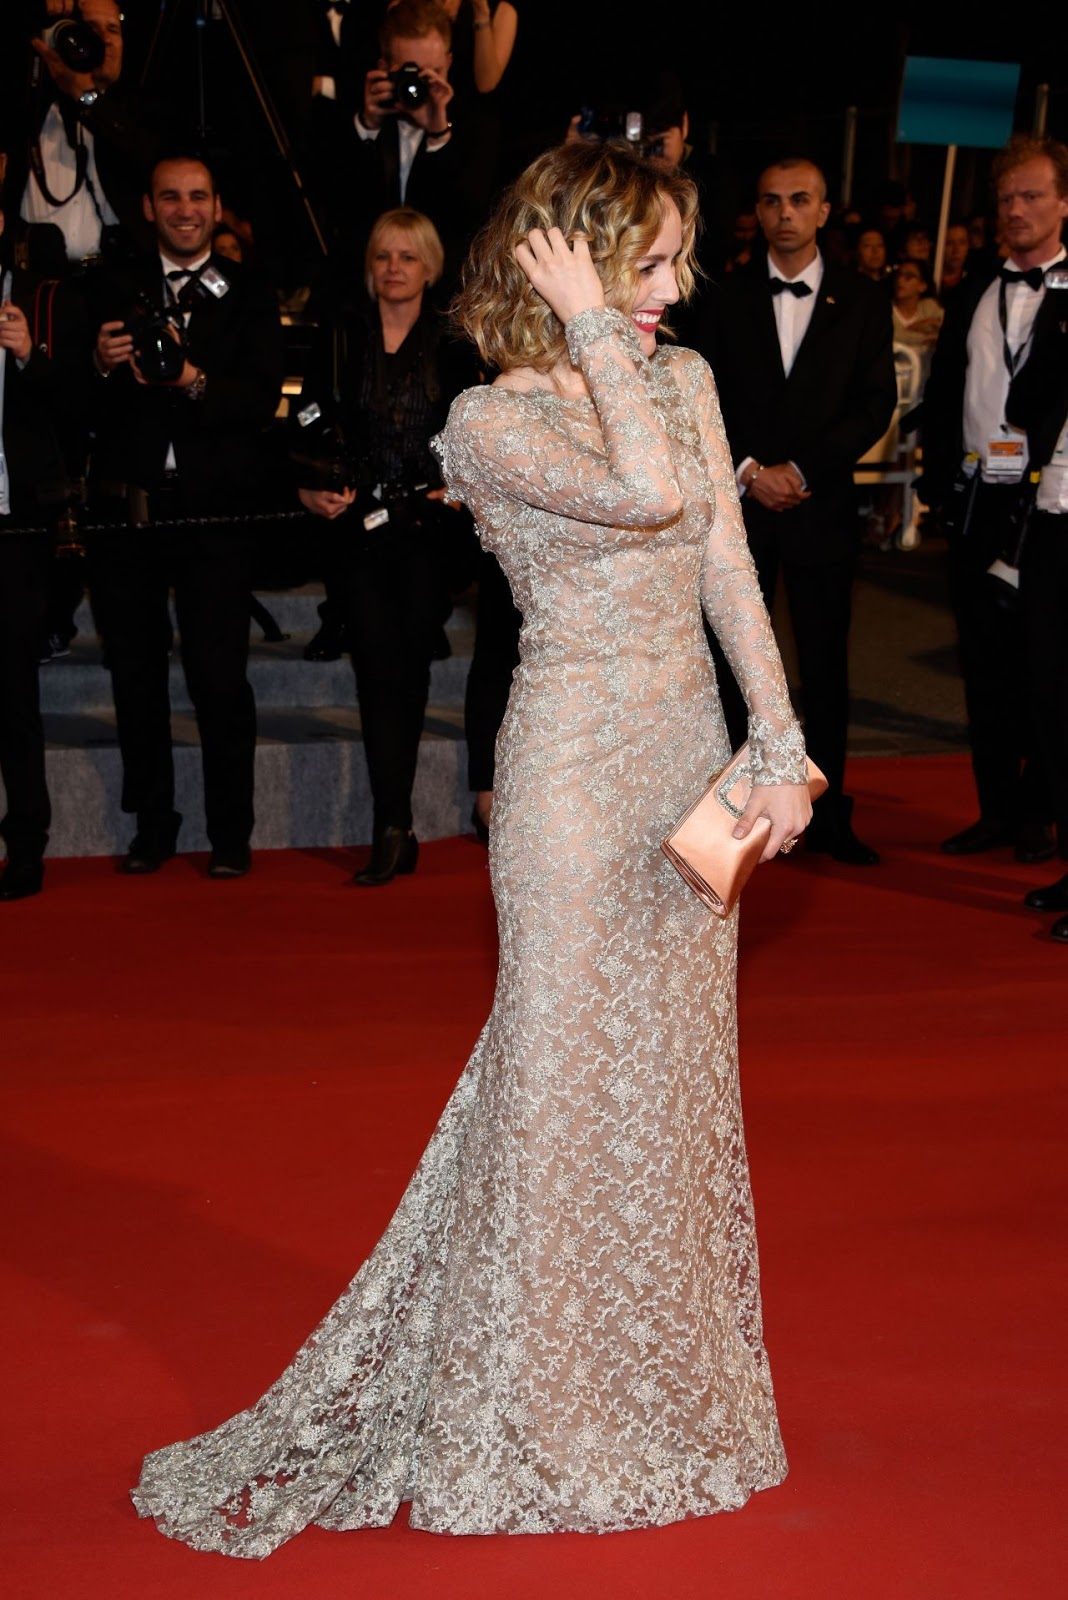 Full HQ Photos of Italian Actress 'Tatiana Luter' Il Racconto Dei Racconti Premiere At 2015 Cannes Film Festival